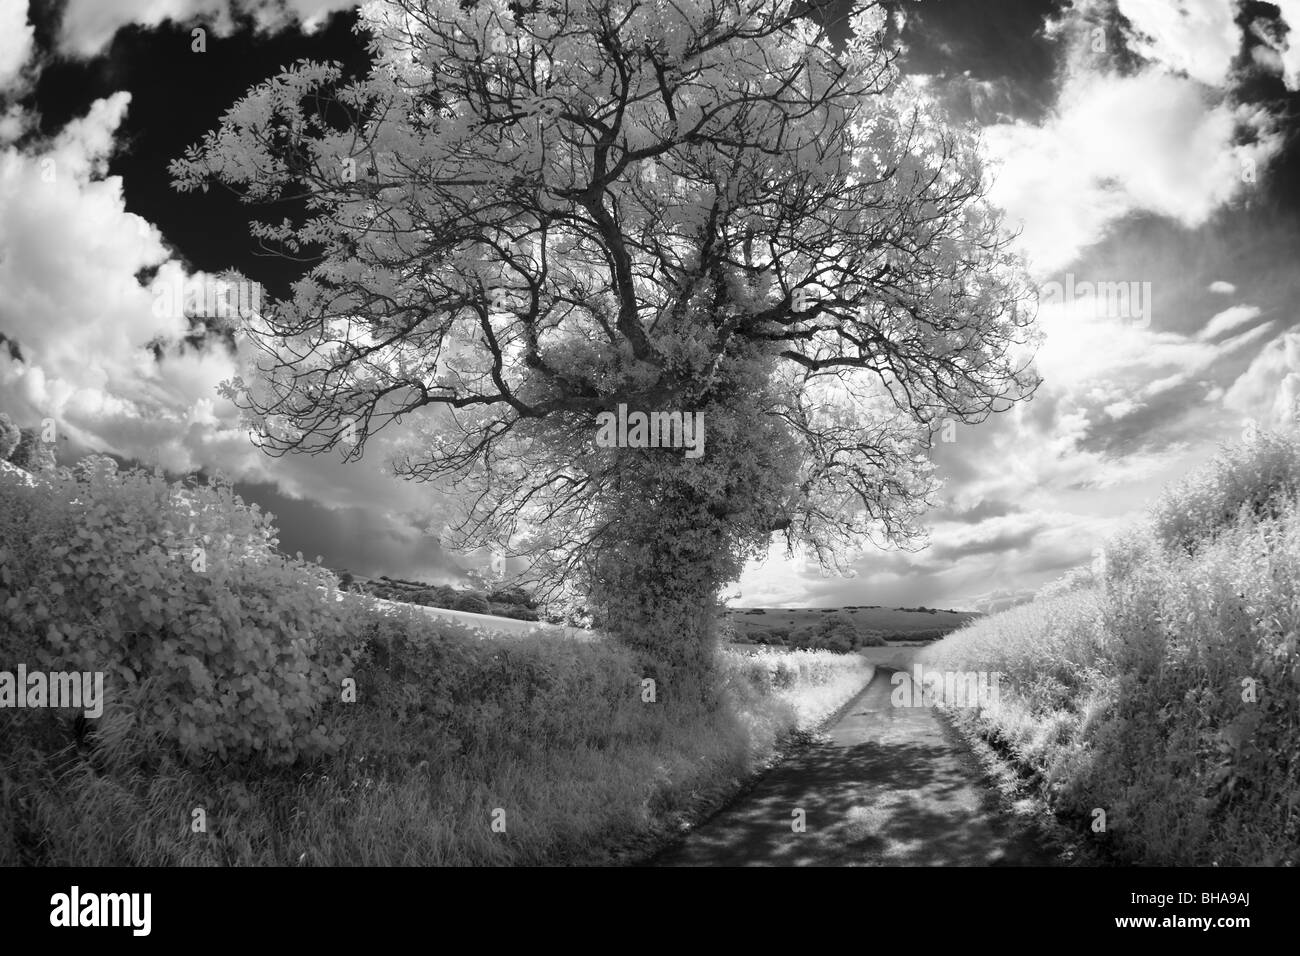 a country lane, nr Up Cerne, Dorset, England, UK - Stock Image